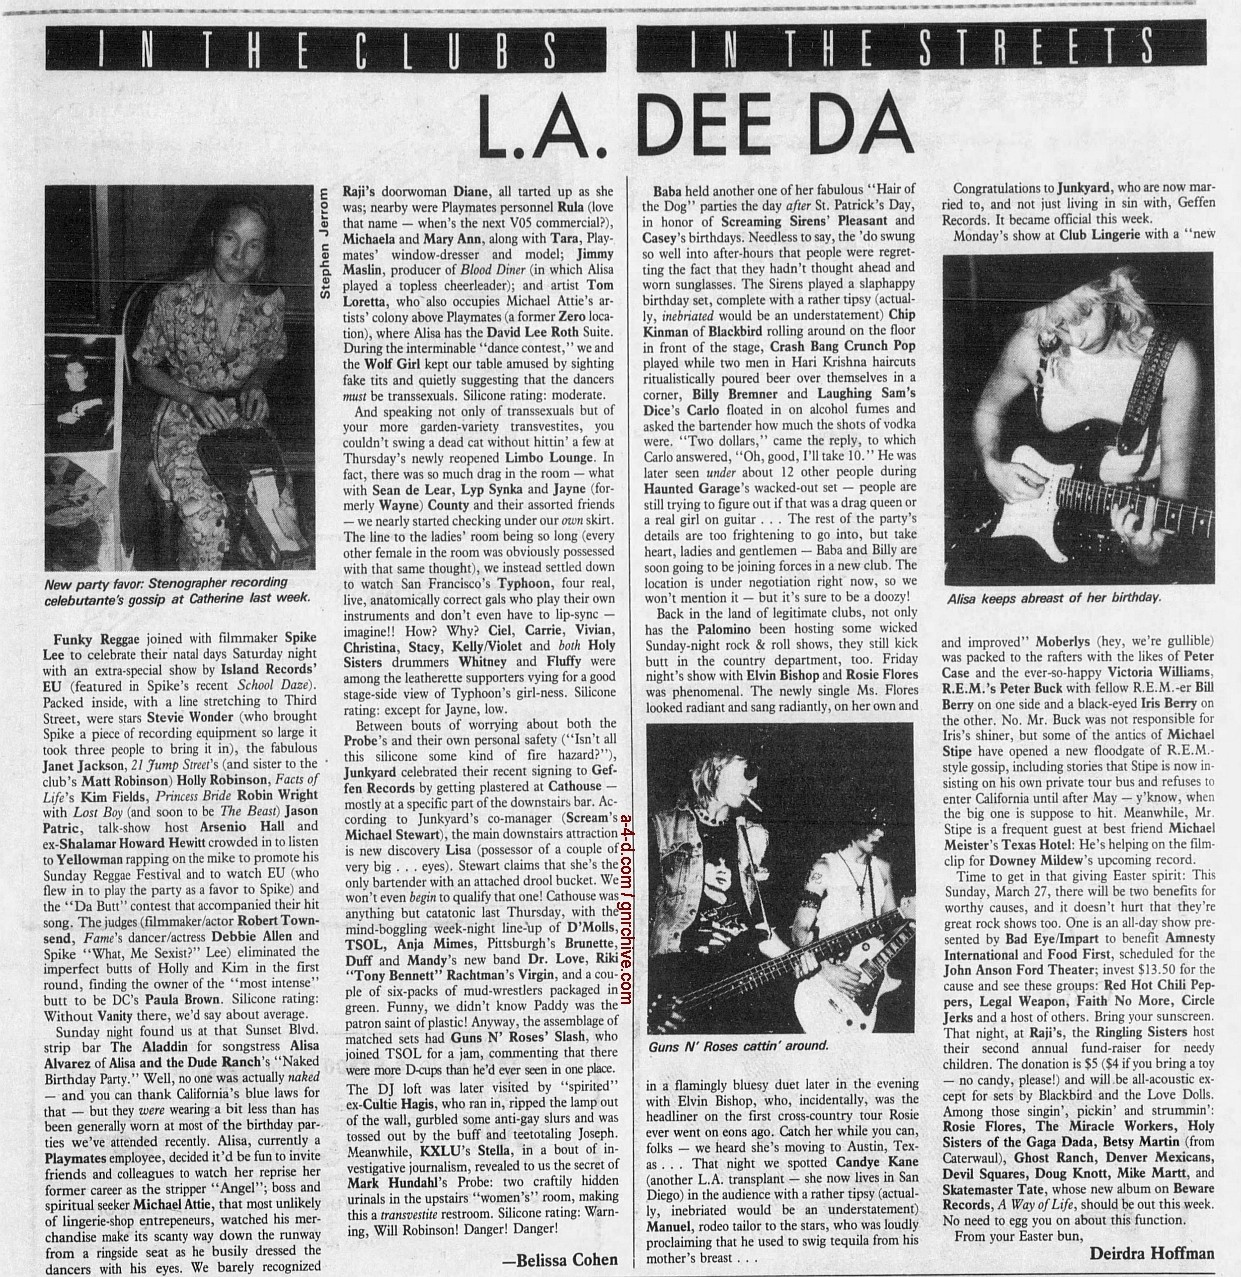 1988.03.25 - L.A. Weekly - L.A. Dee Da [Duff and Slash jam at the Cathouse] 1988_073